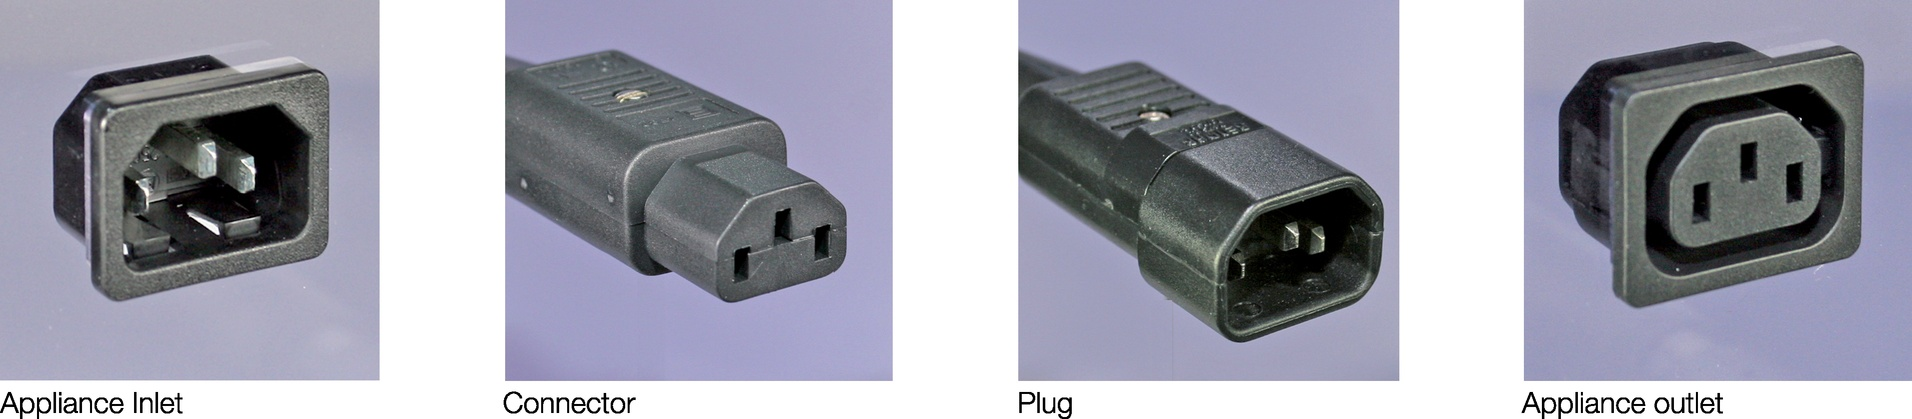 TI_EMV_MatingConnector_SteckerDosen_Legende